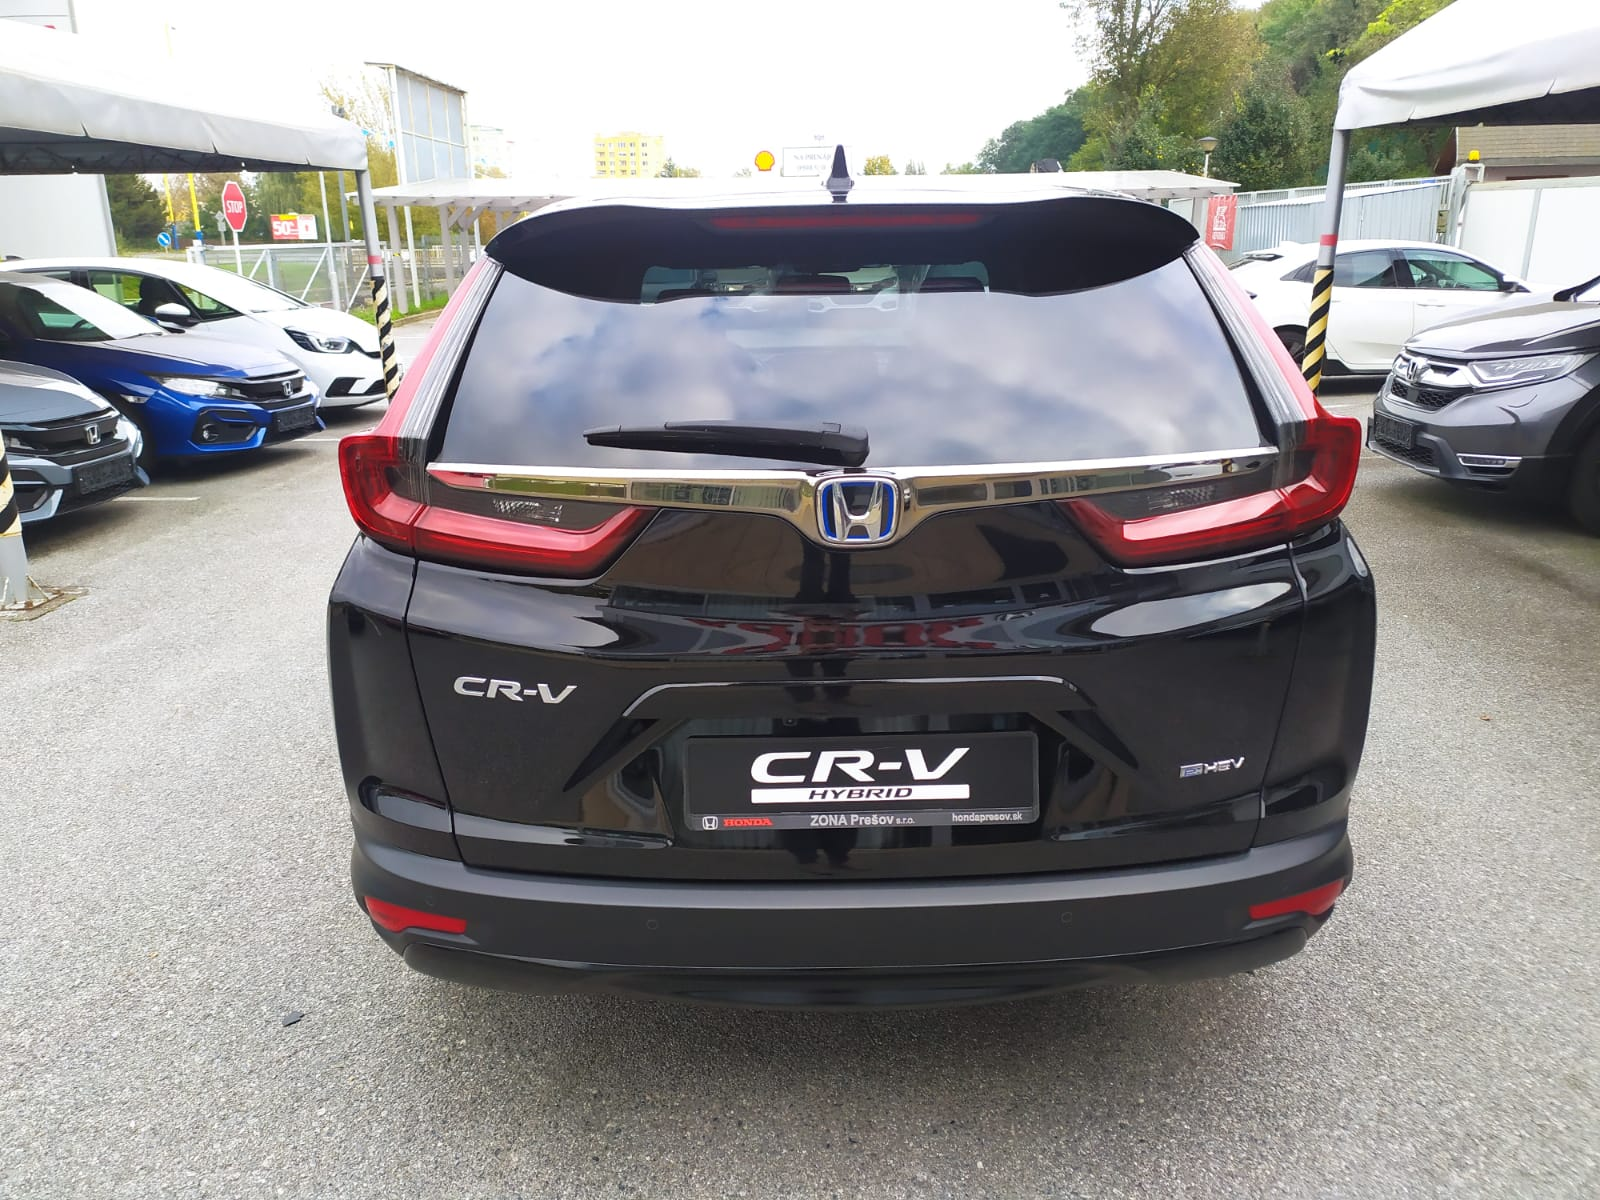 CR-V exterior, rear view, forest